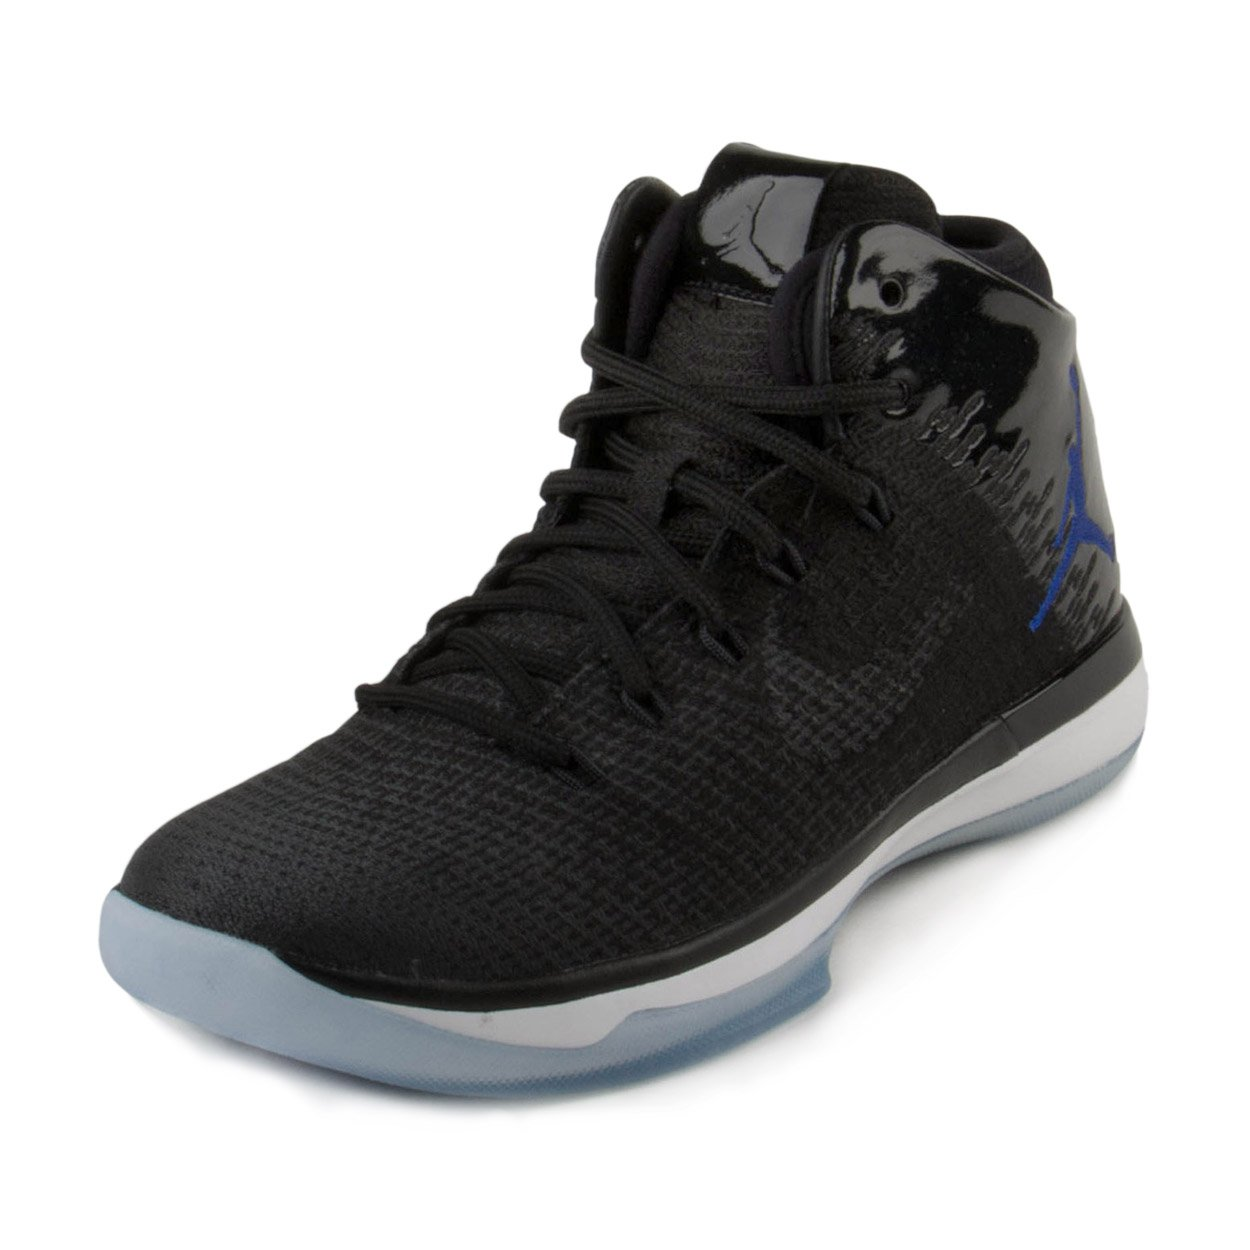 Nike Youth Air Jordan XXXI (GS) Boys Basketball Shoes Black/Concord/White 848629-002 Size 5 by Jordan